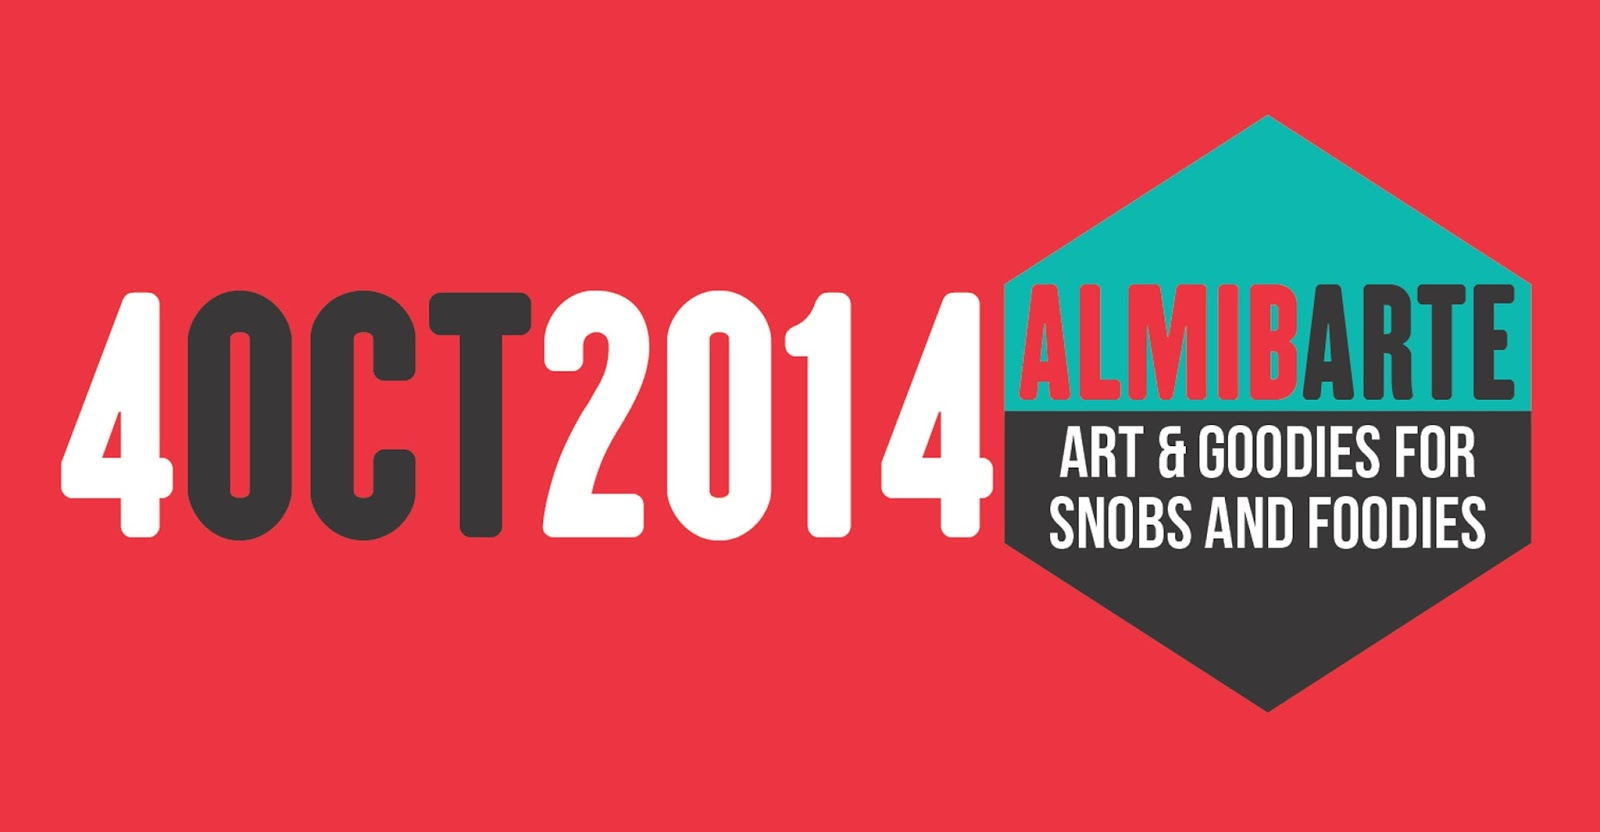 almibarte-2014-art-and-goodies-for-snobs-and-foodies